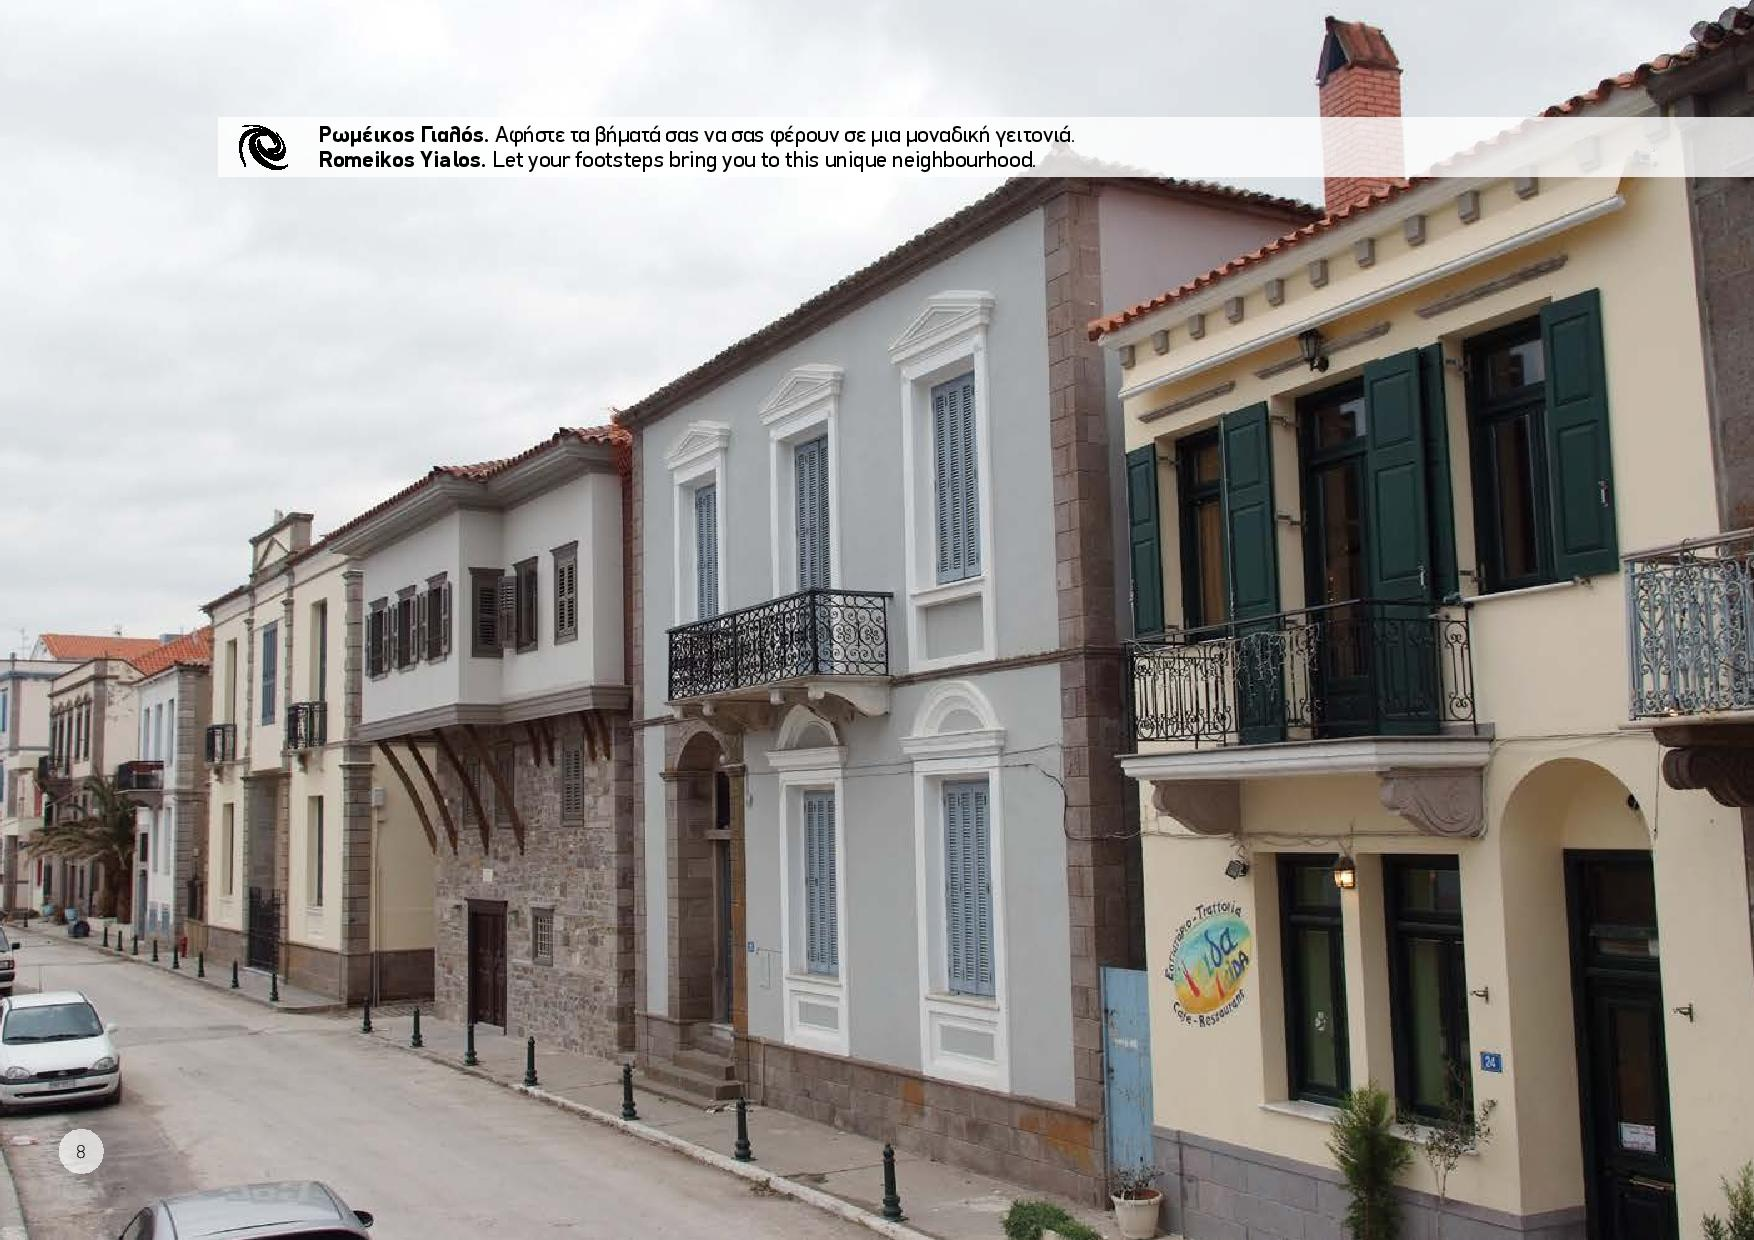 …the capital of the island Myrina, with low houses and mansions, like the scenery of another era.